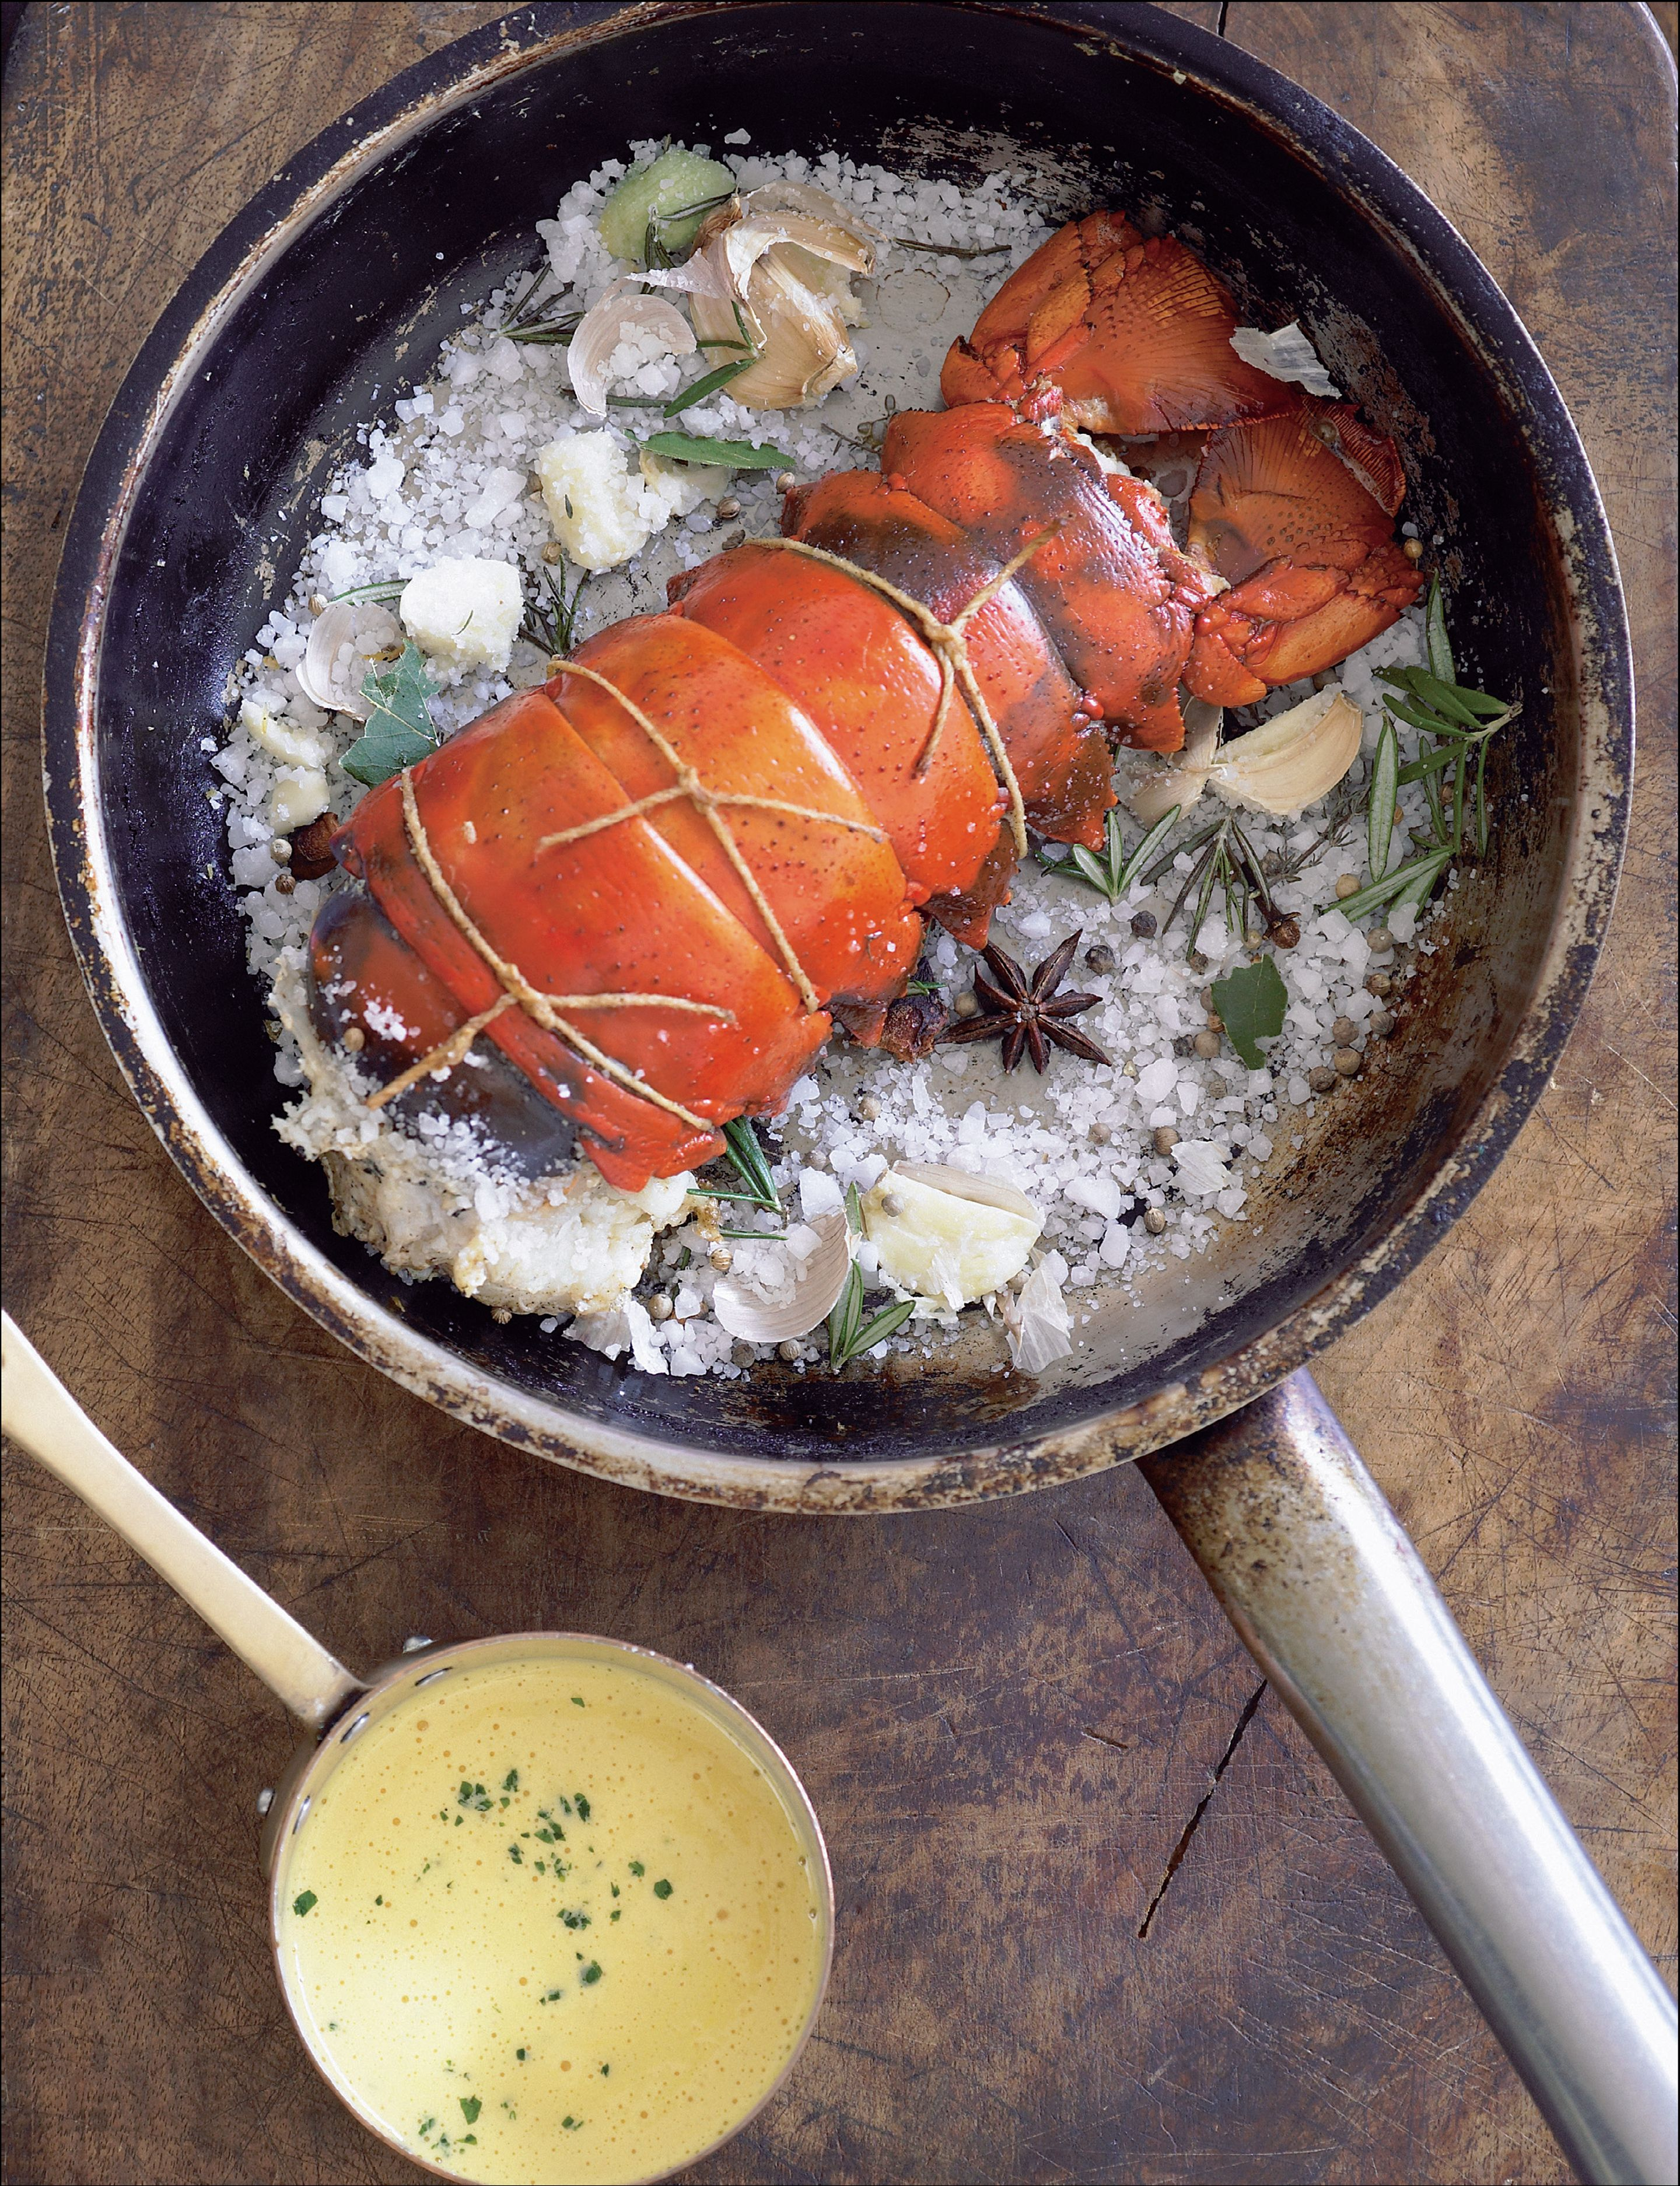 Lobster tail roasted on aromatics